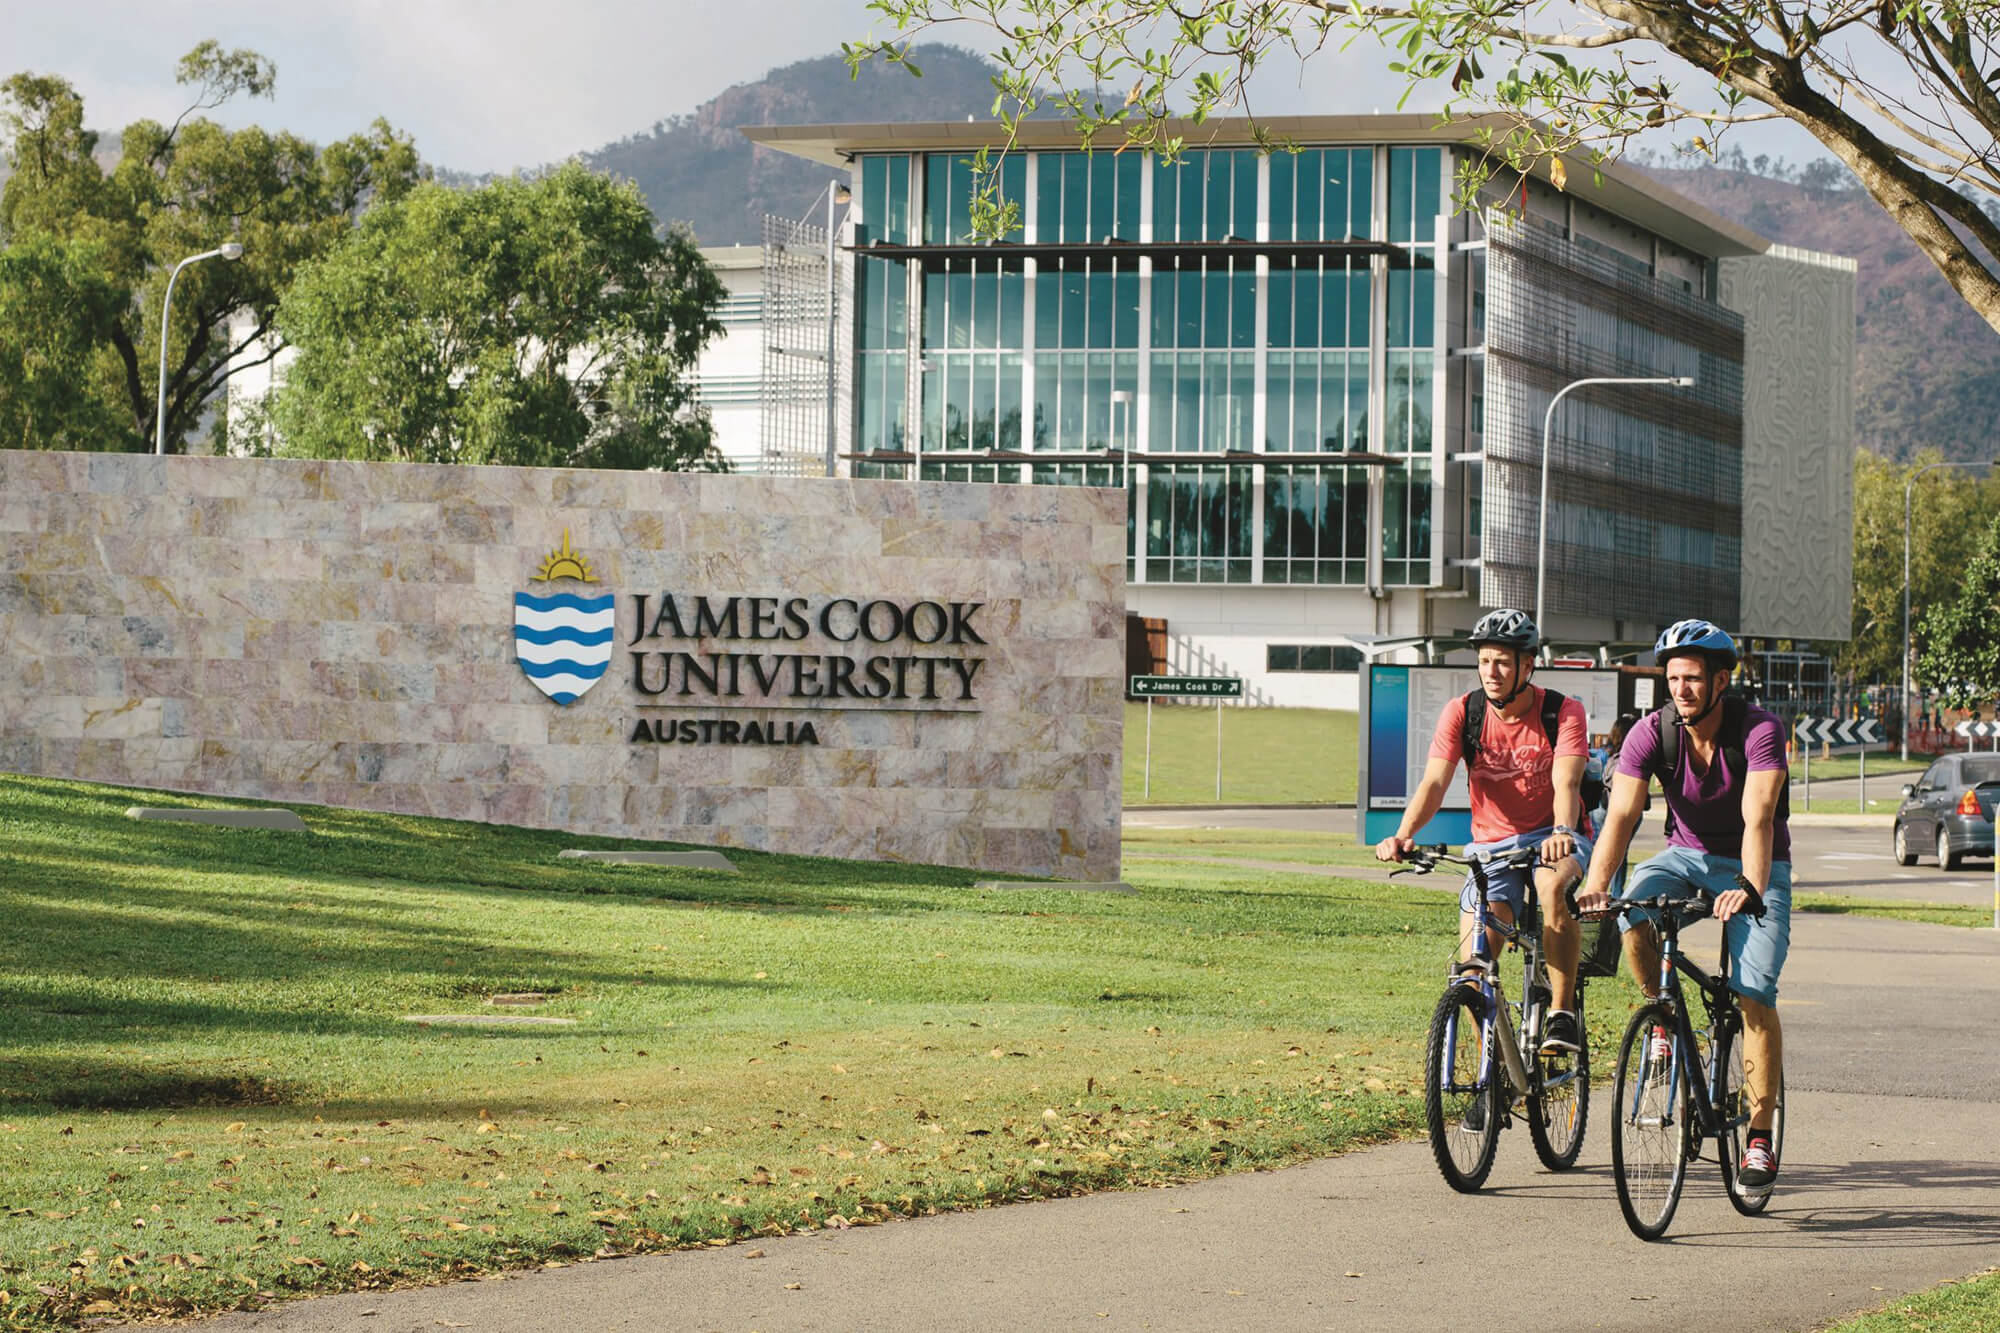 James Cook University Medical School